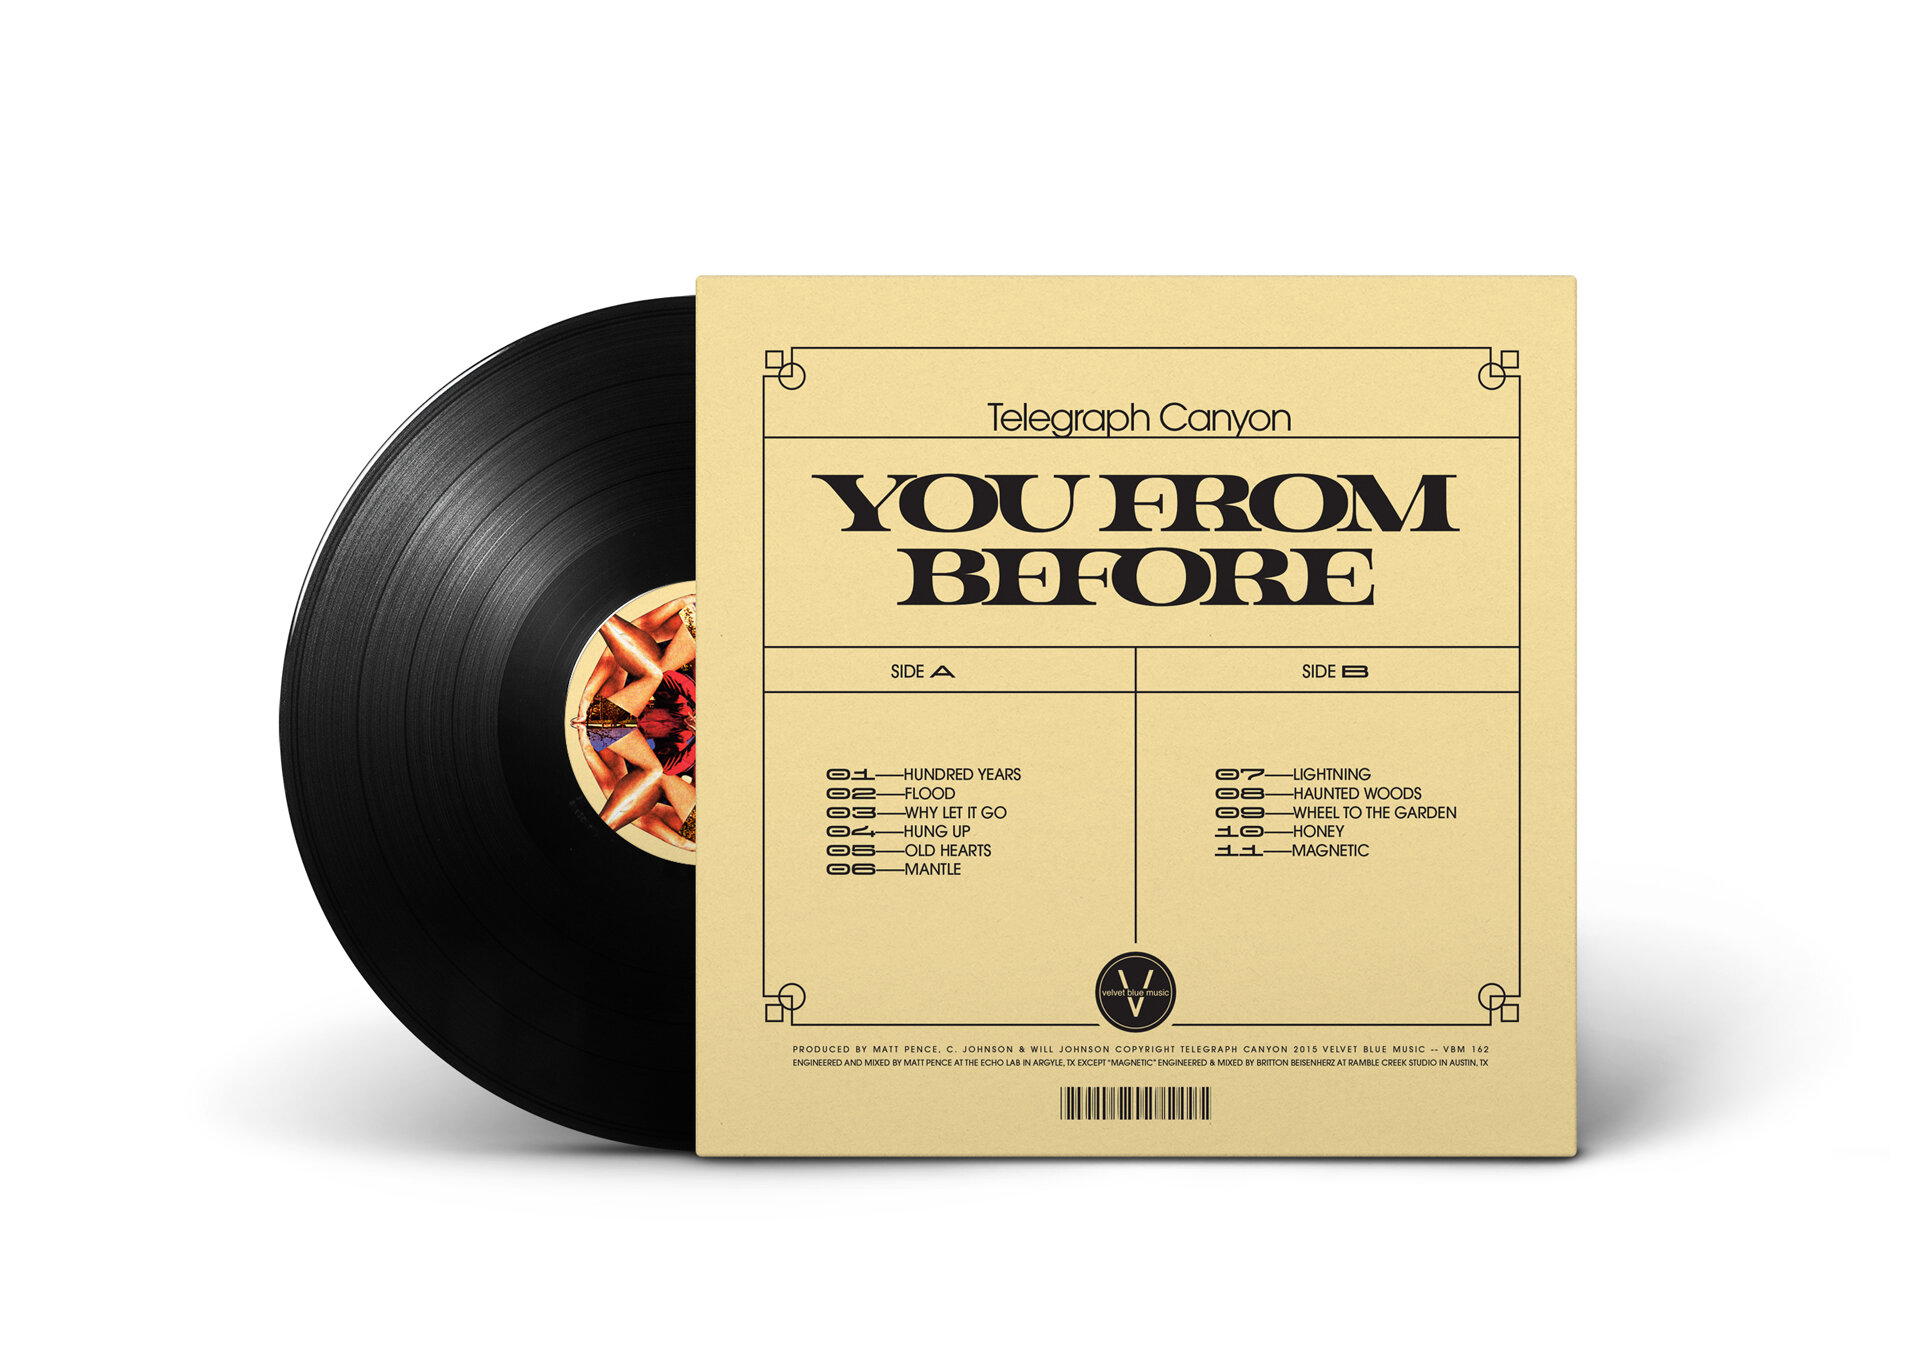 TG-YouFromBefore-Vinyl-BCover-Mockup.jpg